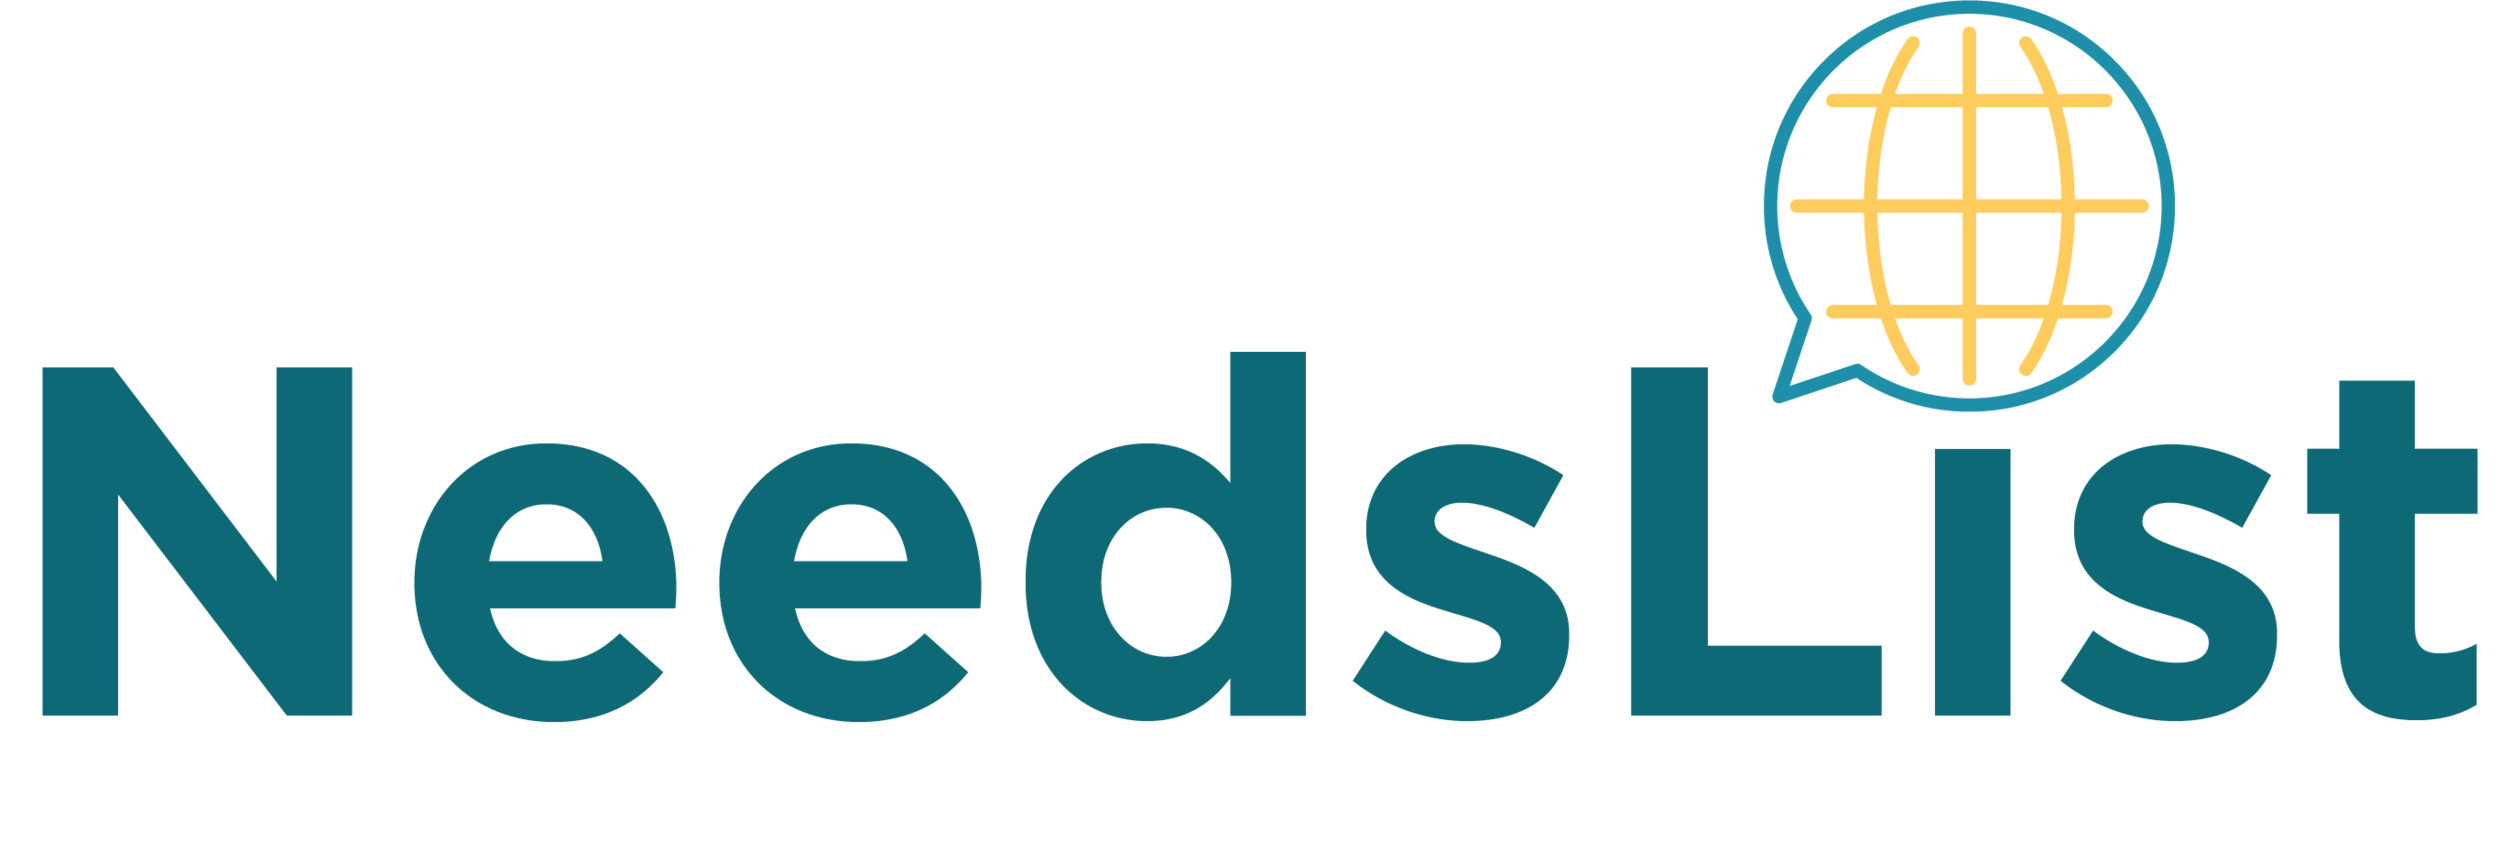 NeedsList is a marketplace bringing efficiency and transparency to humanitarian aid by connecting the needs of the most effective small nonprofit organizations with corporate and individual donors who can help. To date, users have met over 32,000 needs for refugees in 10 countries around the world, as well as people affected by California wildfires and Hurricane Maria in Puerto Rico. The company is testing a chatbot for real-time needs aggregation in Puerto Rico and Greece. NeedsList won first place in the Ben Franklin Technology Partners/Village Capital Fintech Accelerator and participated in the Katapult Accelerator in Oslo this past summer, and Mass Challenge in Geneva.